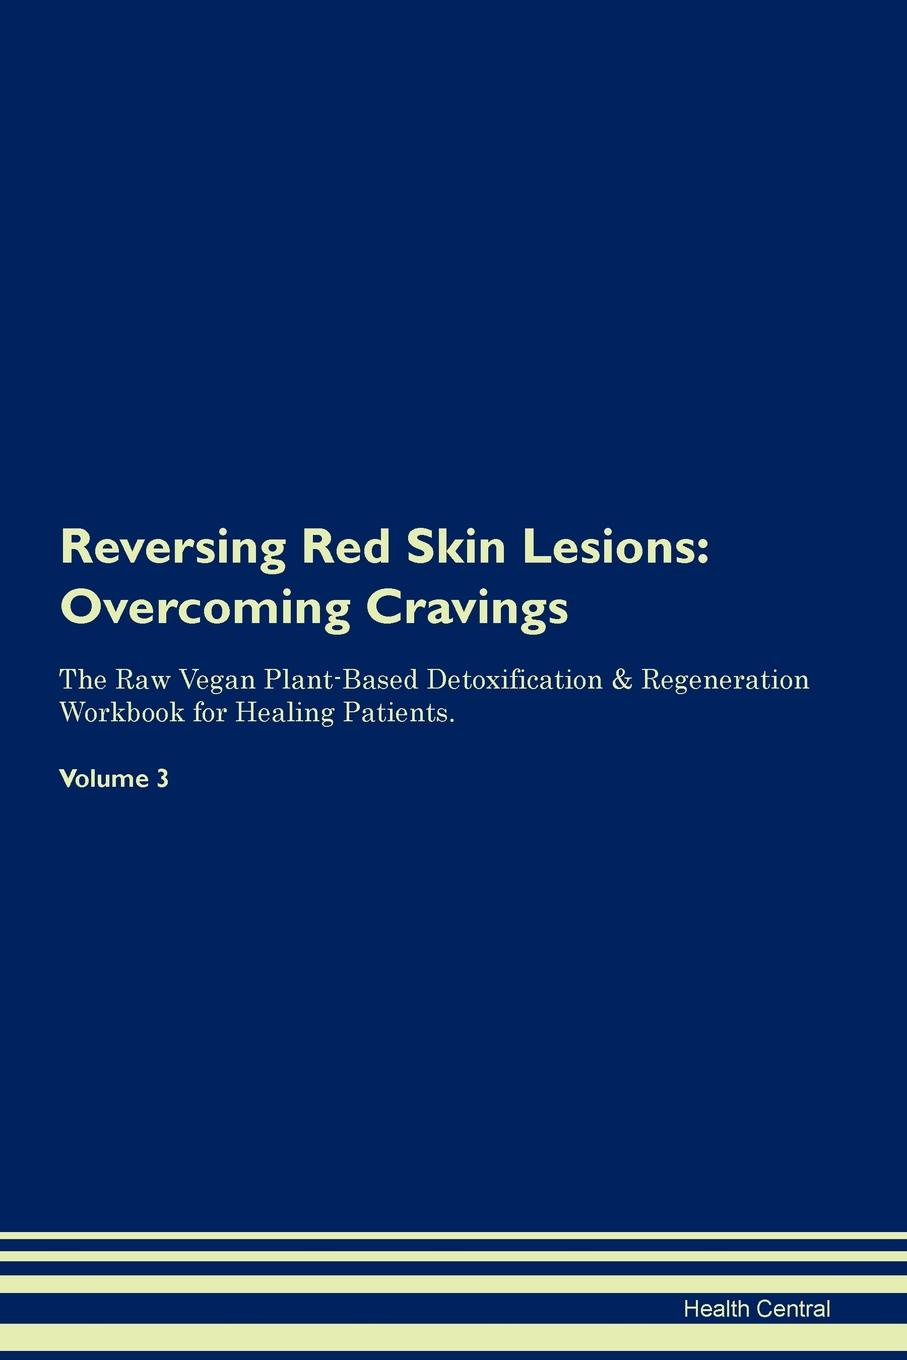 Health Central Reversing Red Skin Lesions. Overcoming Cravings The Raw Vegan Plant-Based Detoxification . Regeneration Workbook for Healing Patients. Volume 3